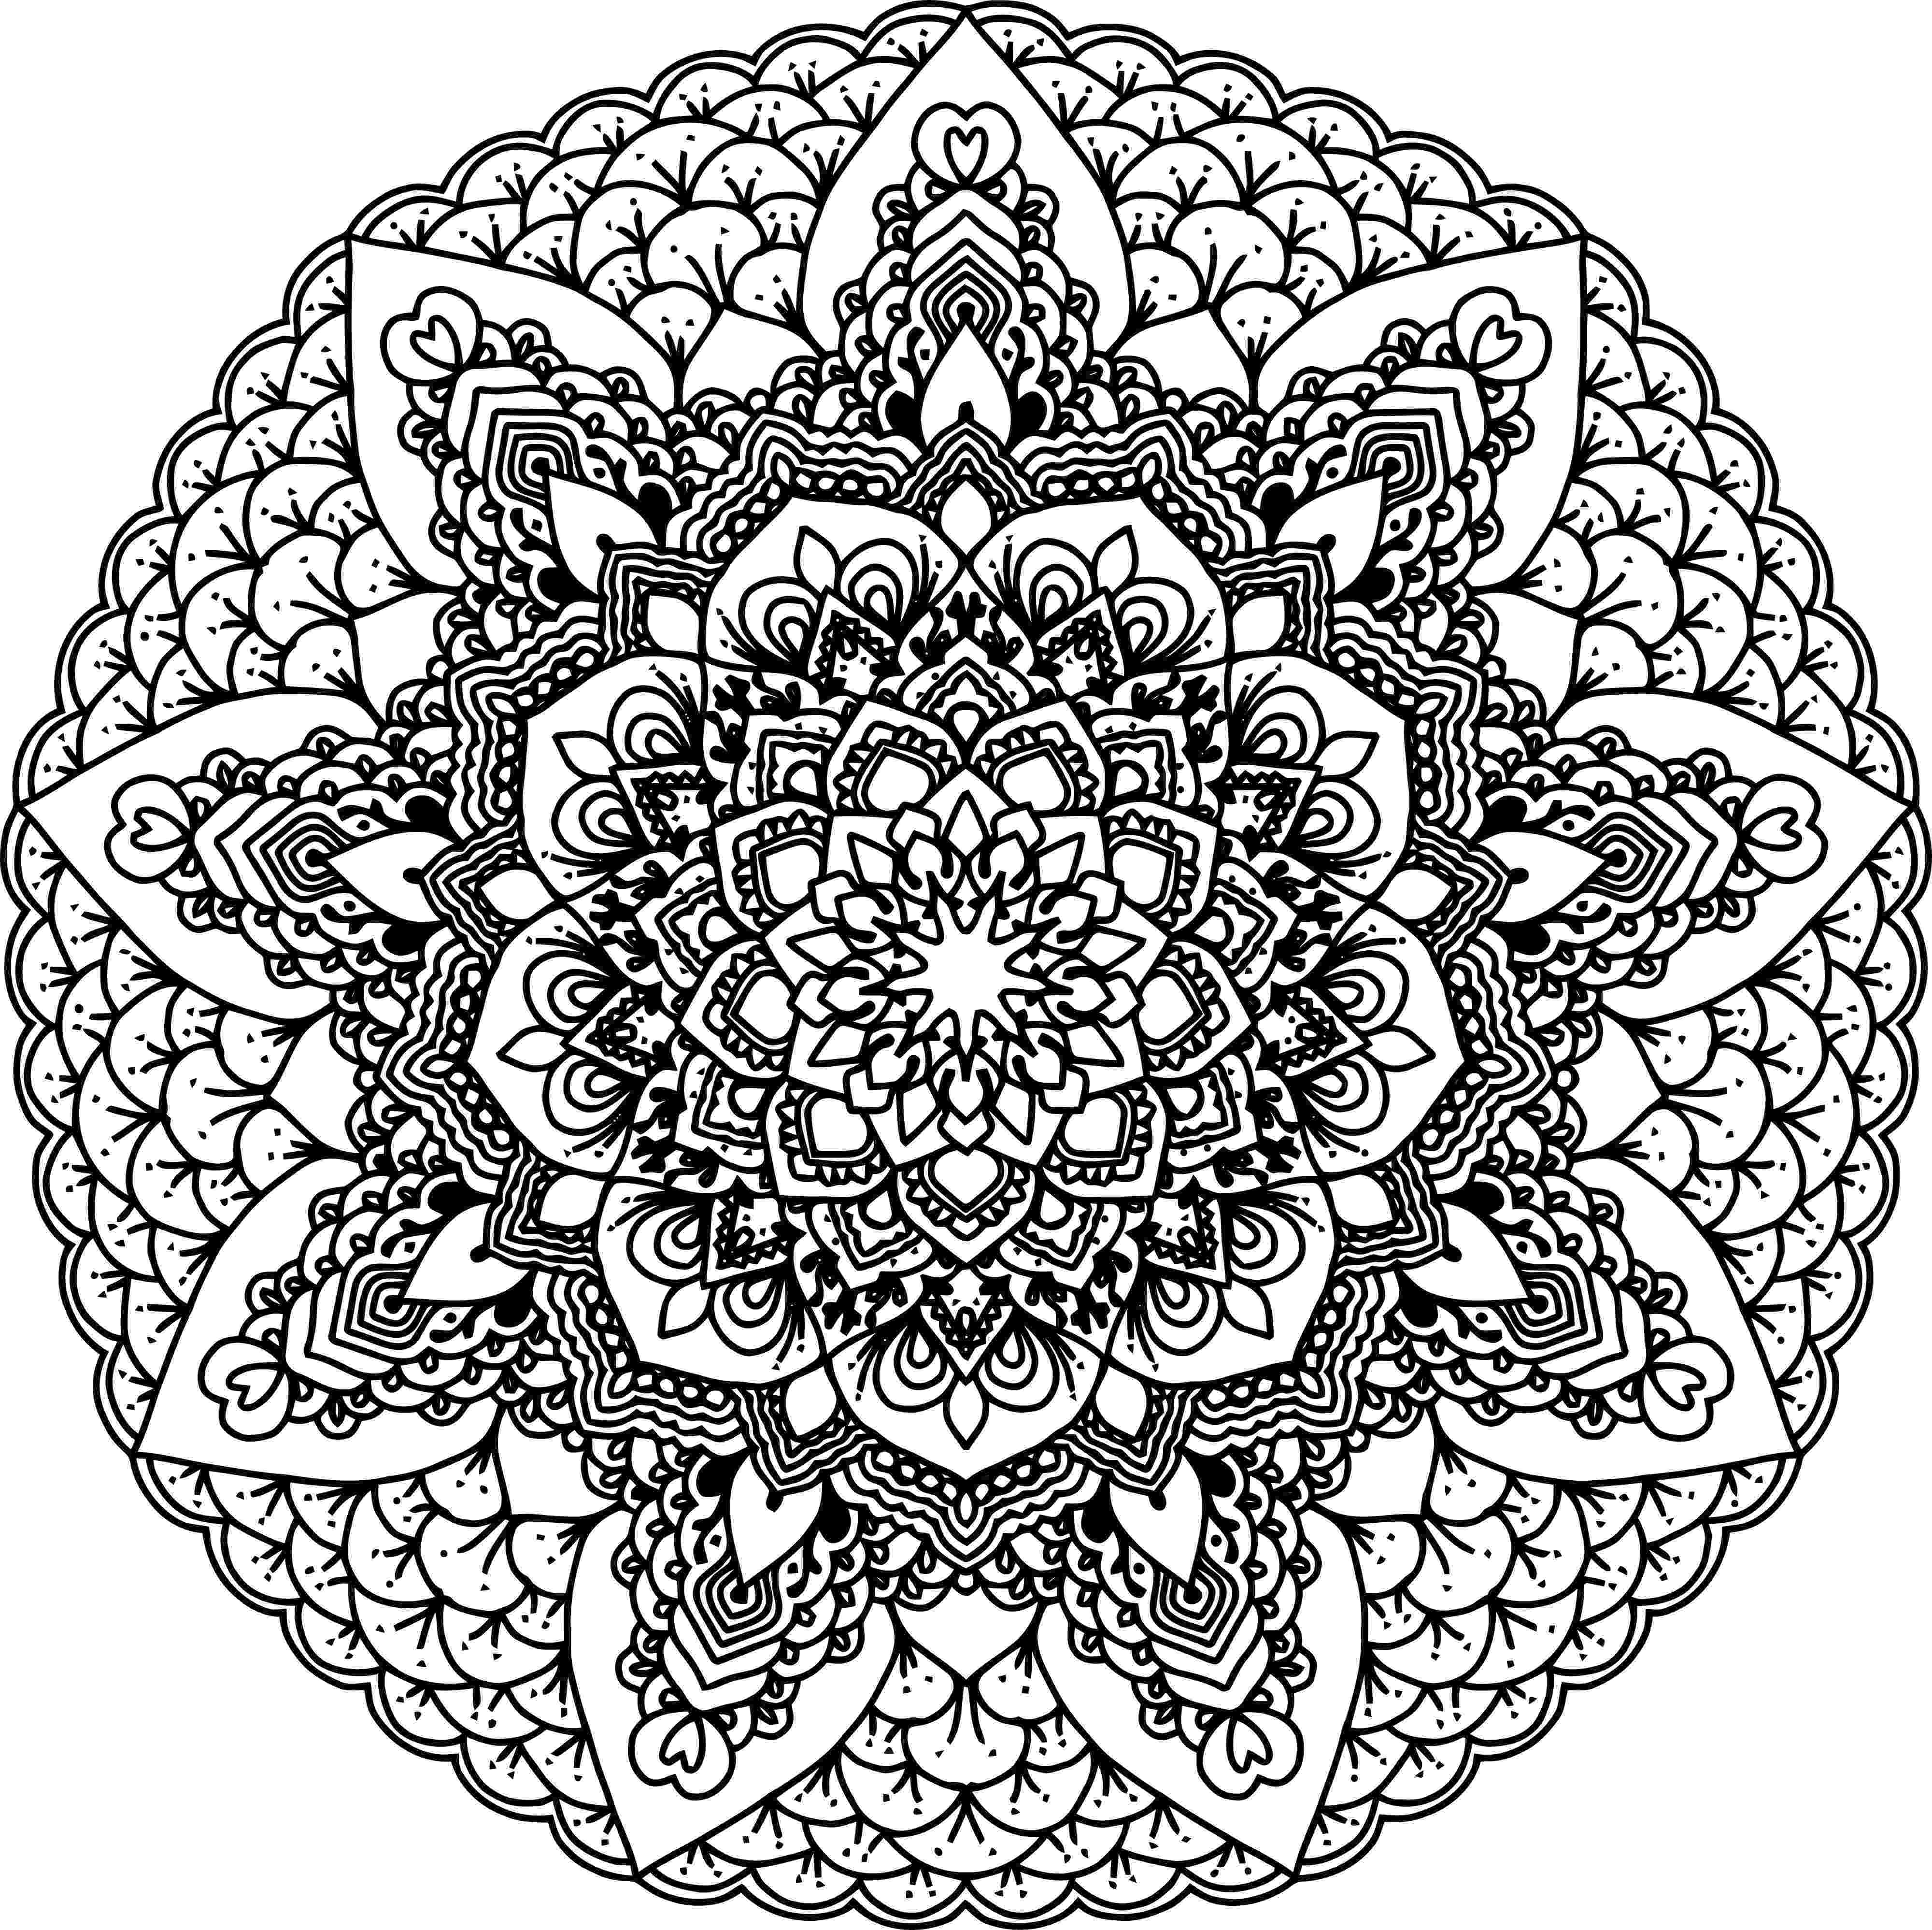 black and white coloring pages for adults tree black white flowers adult coloring pages page 2 and for coloring pages adults white black